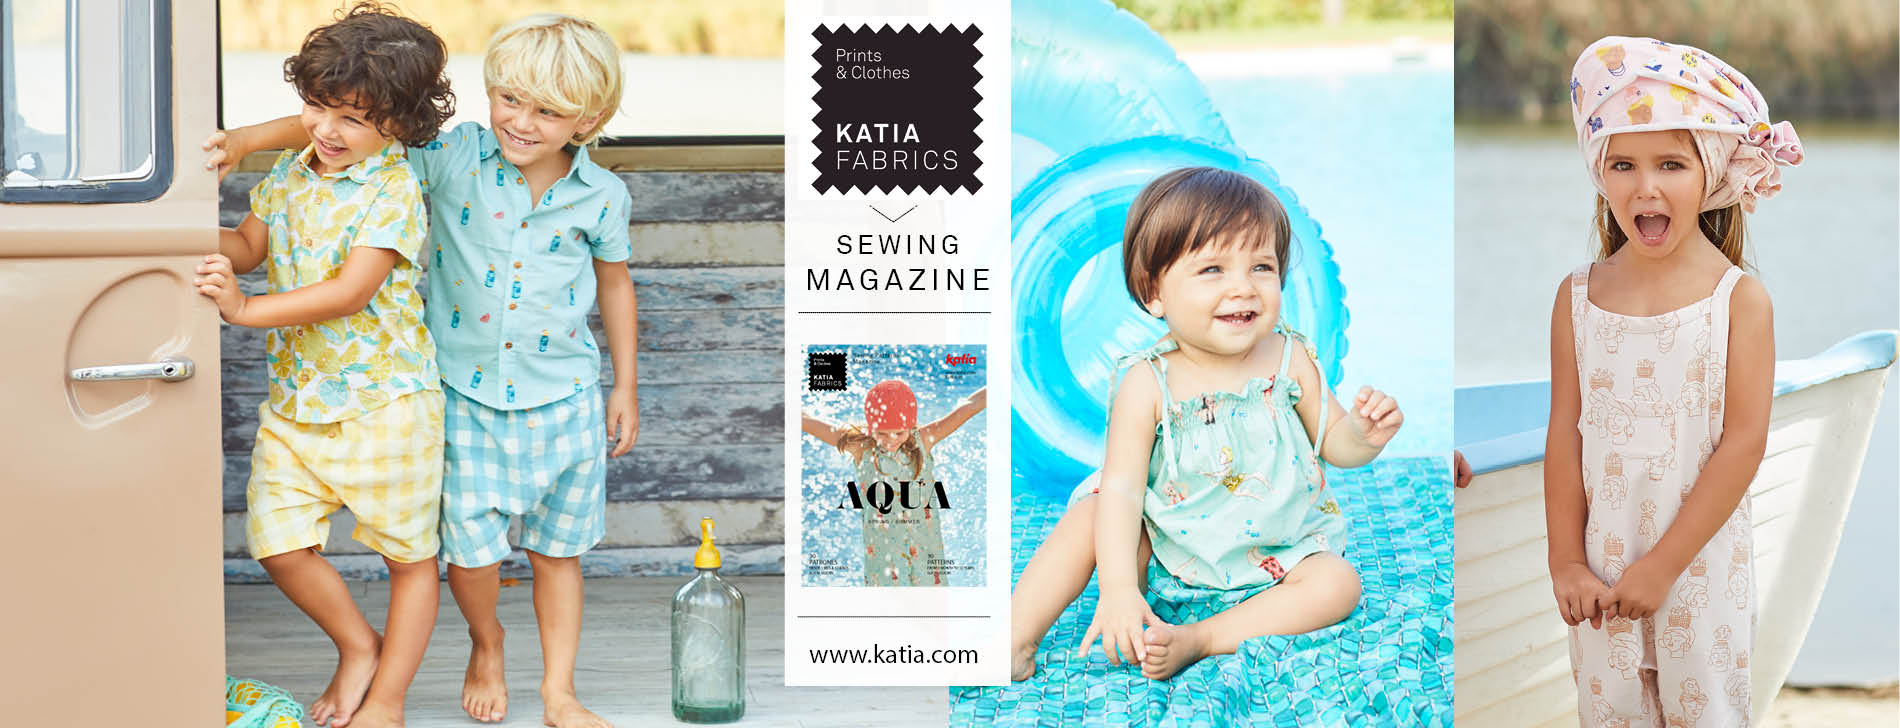 first sewing pattern magazine Katia Fabrics